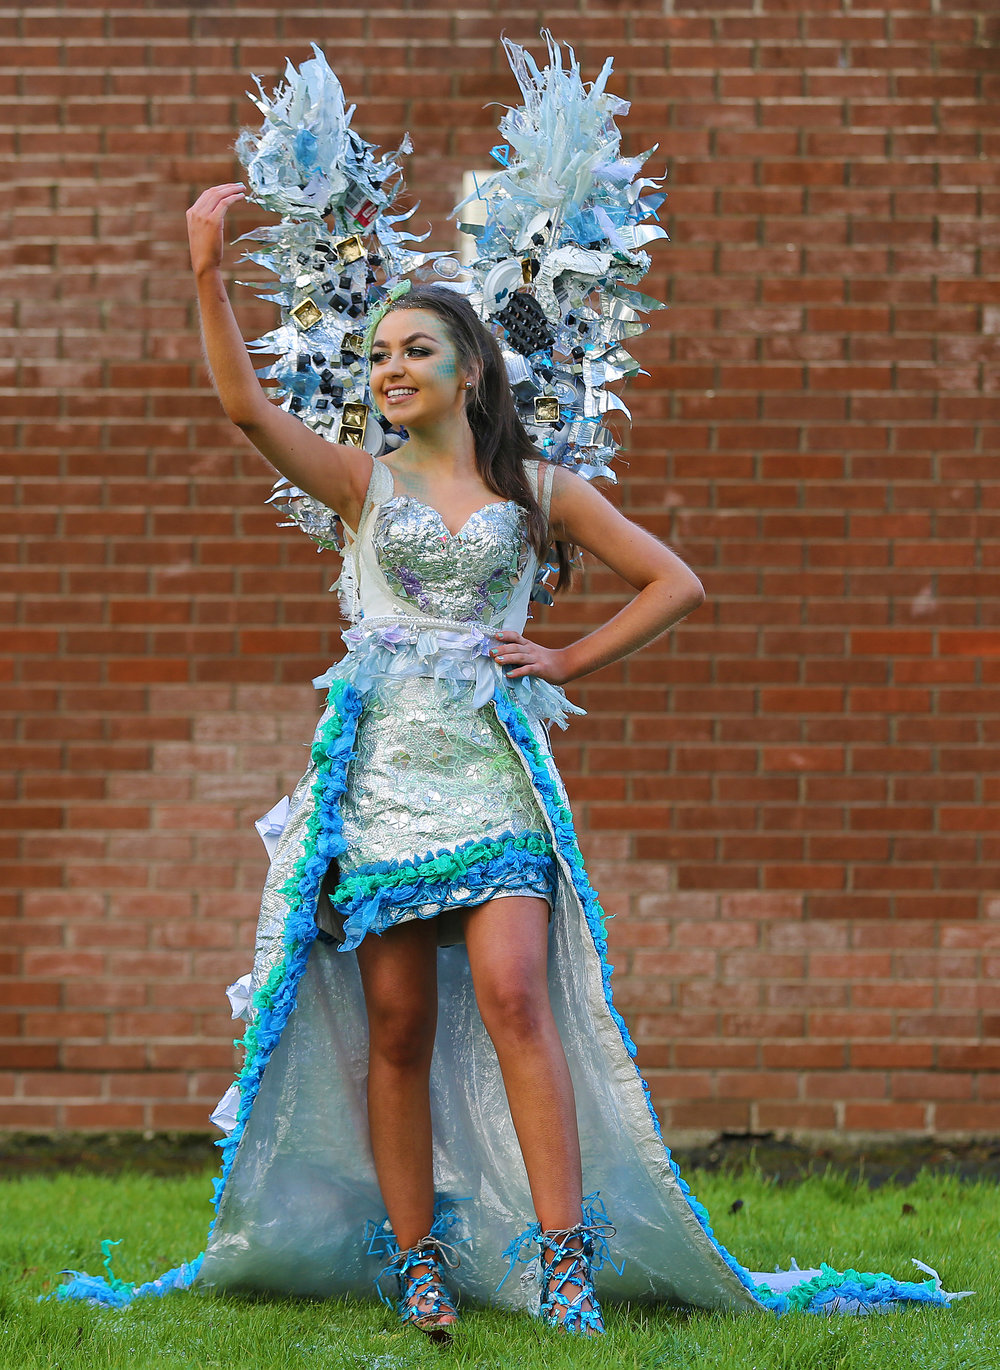 Recycled Fashion Design Junk Kouture Mercy Ballymahon Entry 2018 Ty Students Dearbháil Rooney Bláthnaid McDonagh